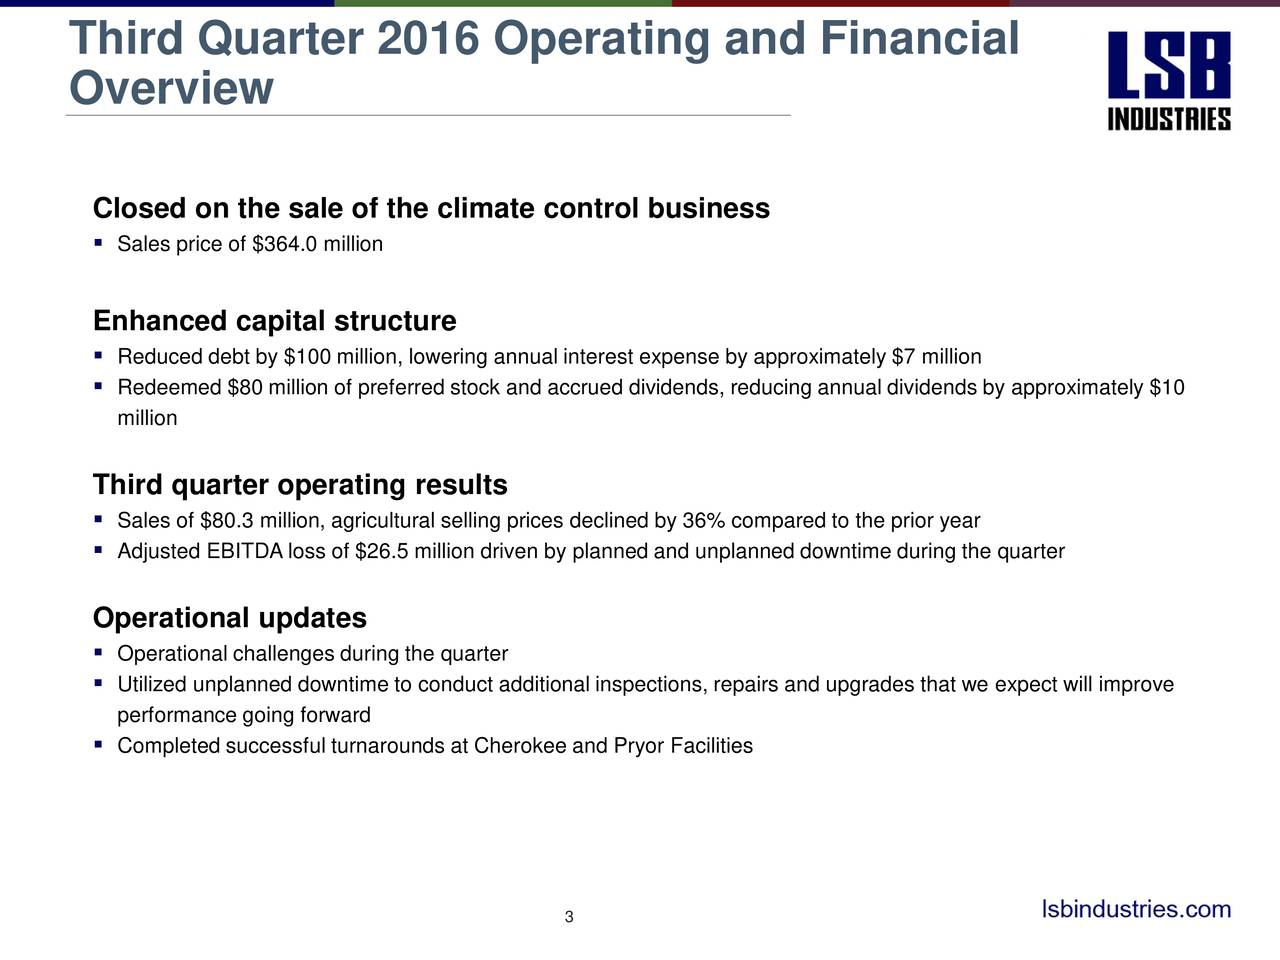 Overview Closed on the sale of the climate control business Sales price of $364.0 million Enhanced capital structure Reduced debt by $100 million, lowering annual interest expense by approximately $7 million Redeemed $80 million of preferred stock and accrued dividends, reducing annual dividends by approximately $10 million Third quarter operating results Sales of $80.3 million, agricultural selling prices declined by 36% compared to the prior year Adjusted EBITDA loss of $26.5 million driven by planned and unplanned downtime during the quarter Operational updates Operational challenges during the quarter Utilized unplanned downtime to conduct additional inspections, repairs and upgrades that we expect will improve performance going forward Completed successful turnarounds at Cherokee and Pryor Facilities 3